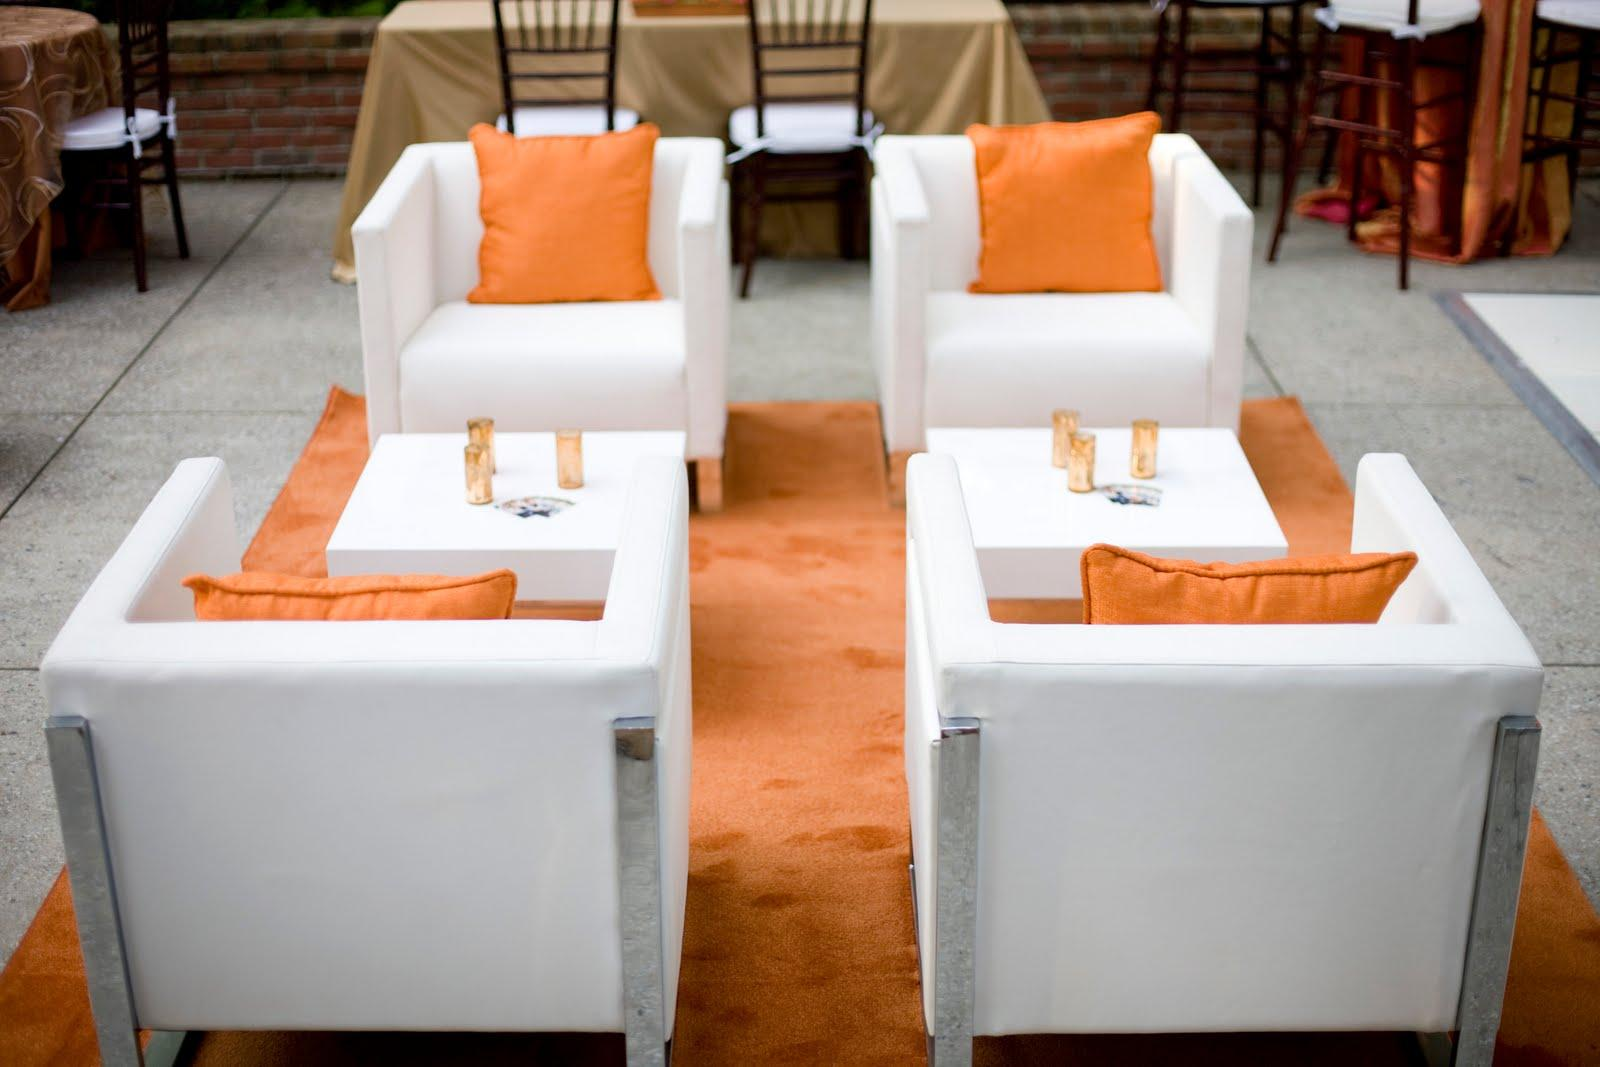 The orange and white lounge